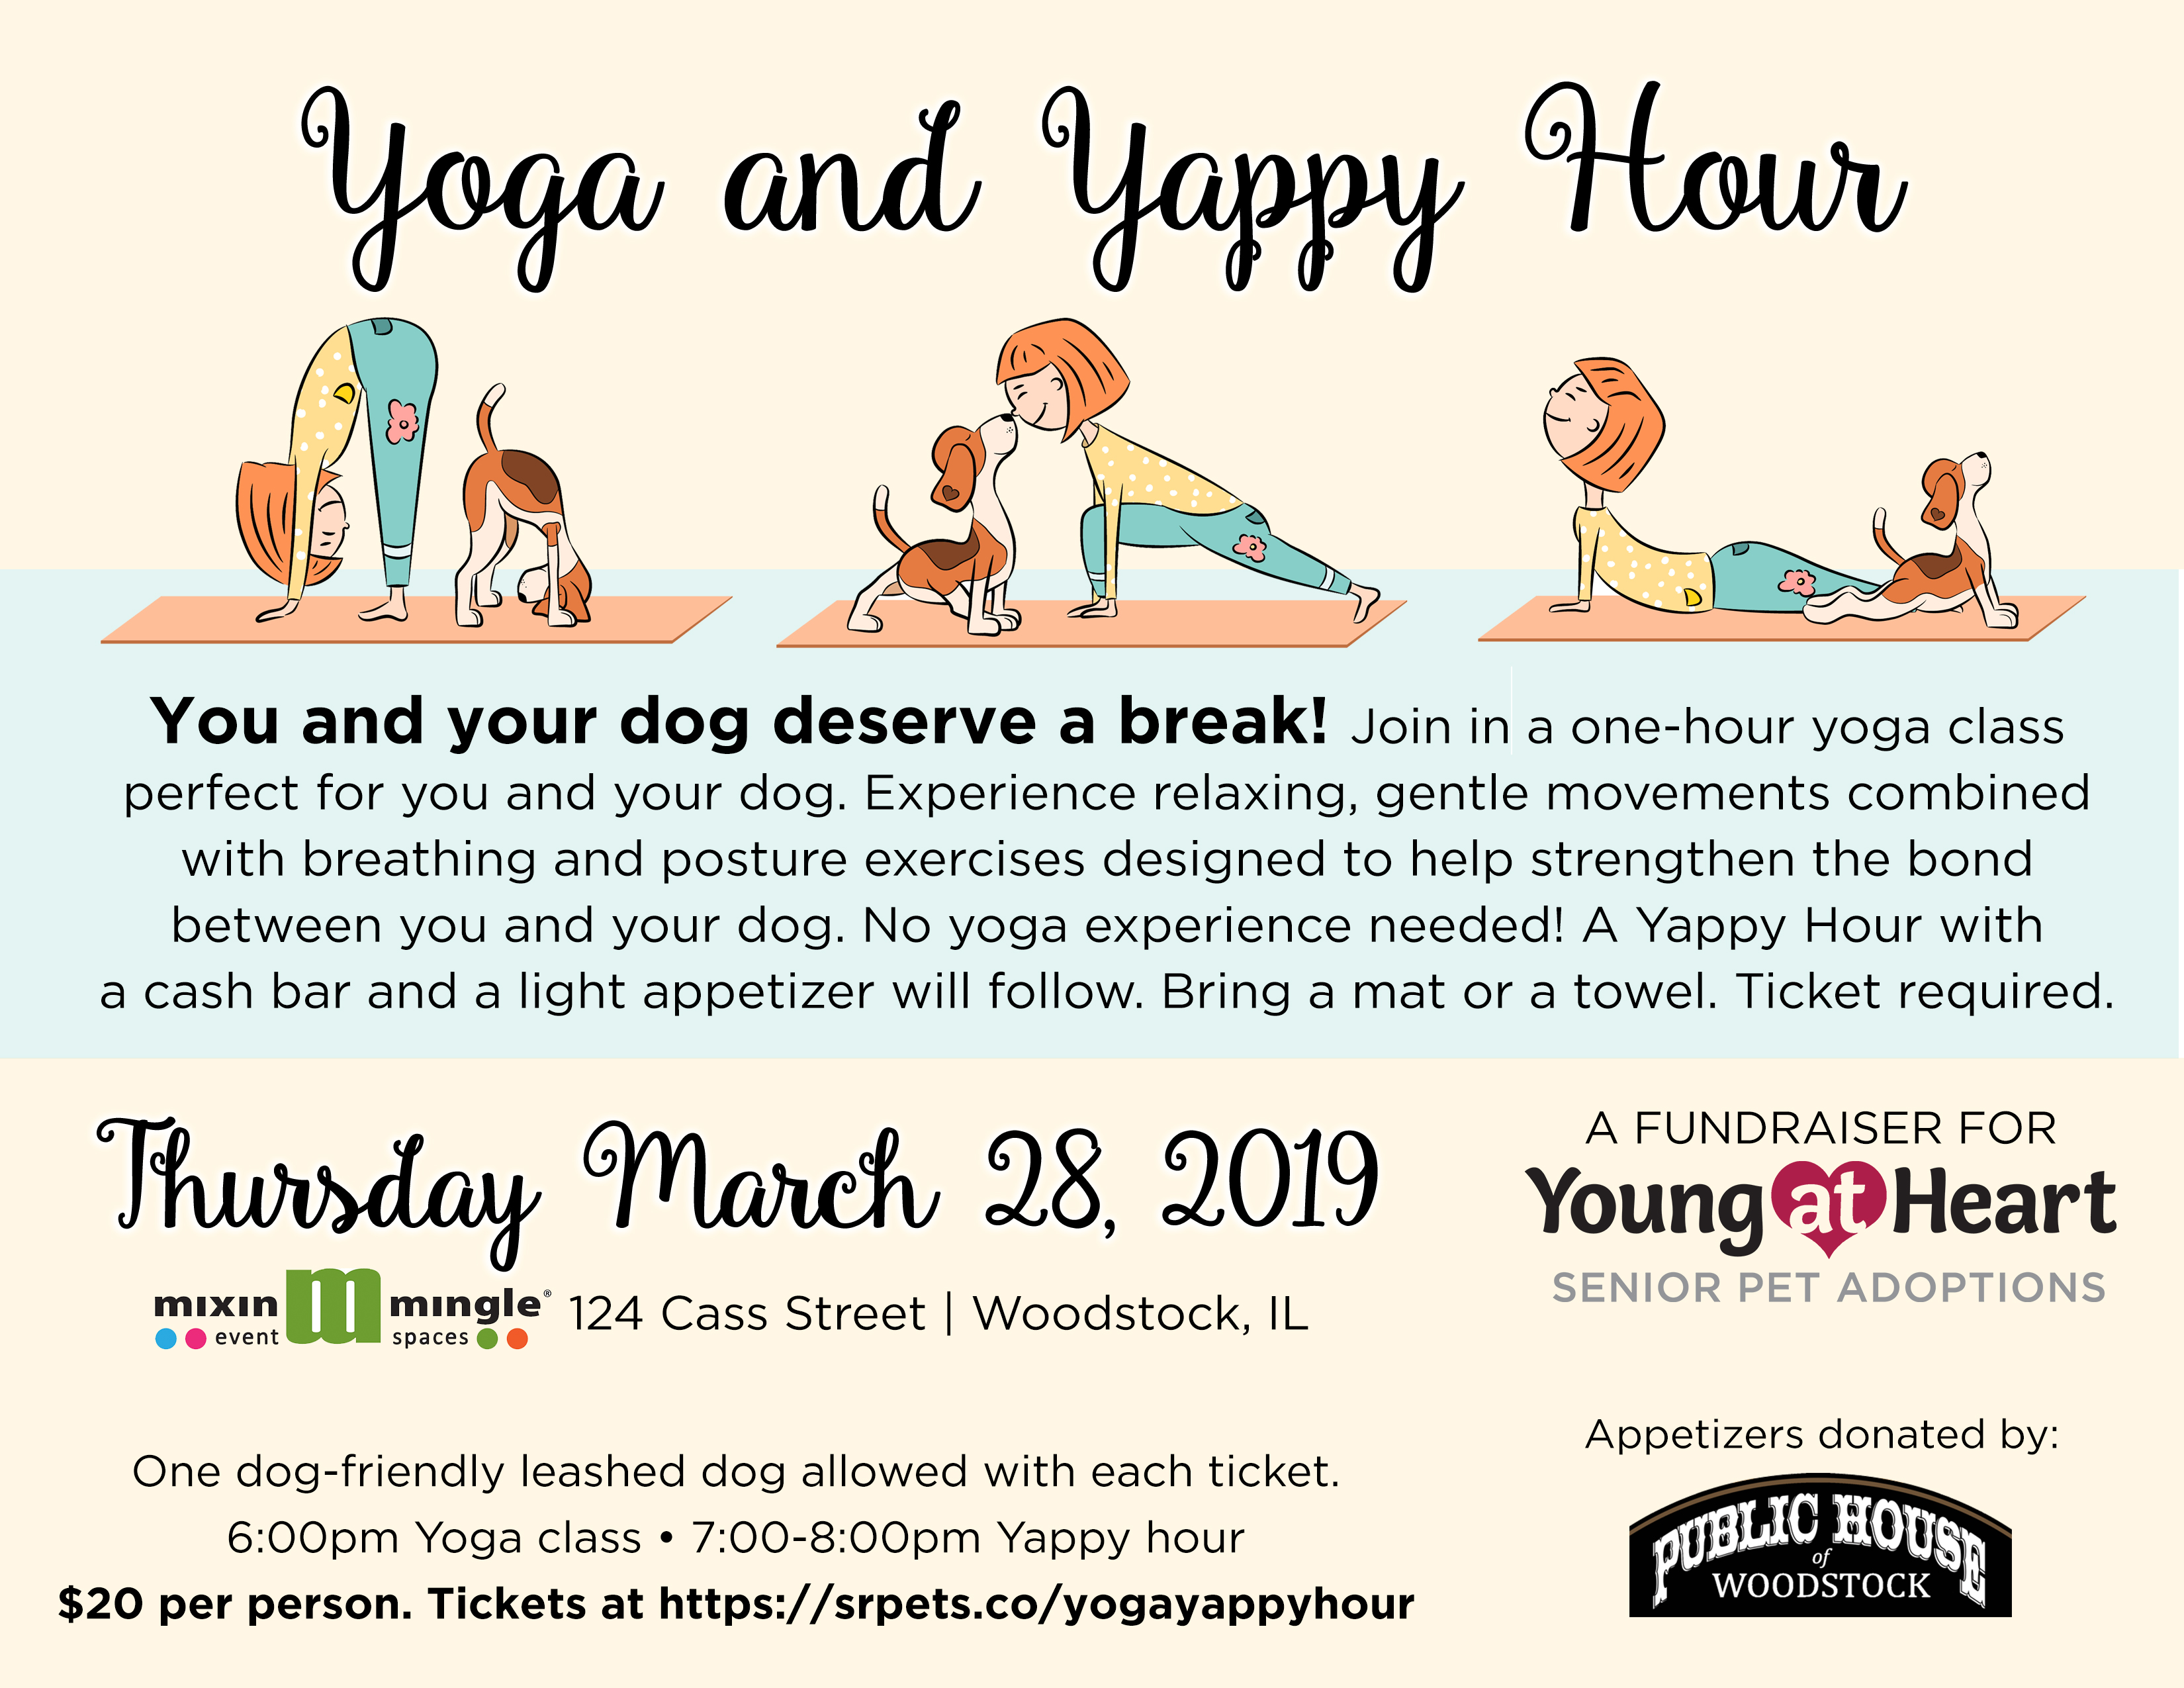 Yoga and Yappy Hour